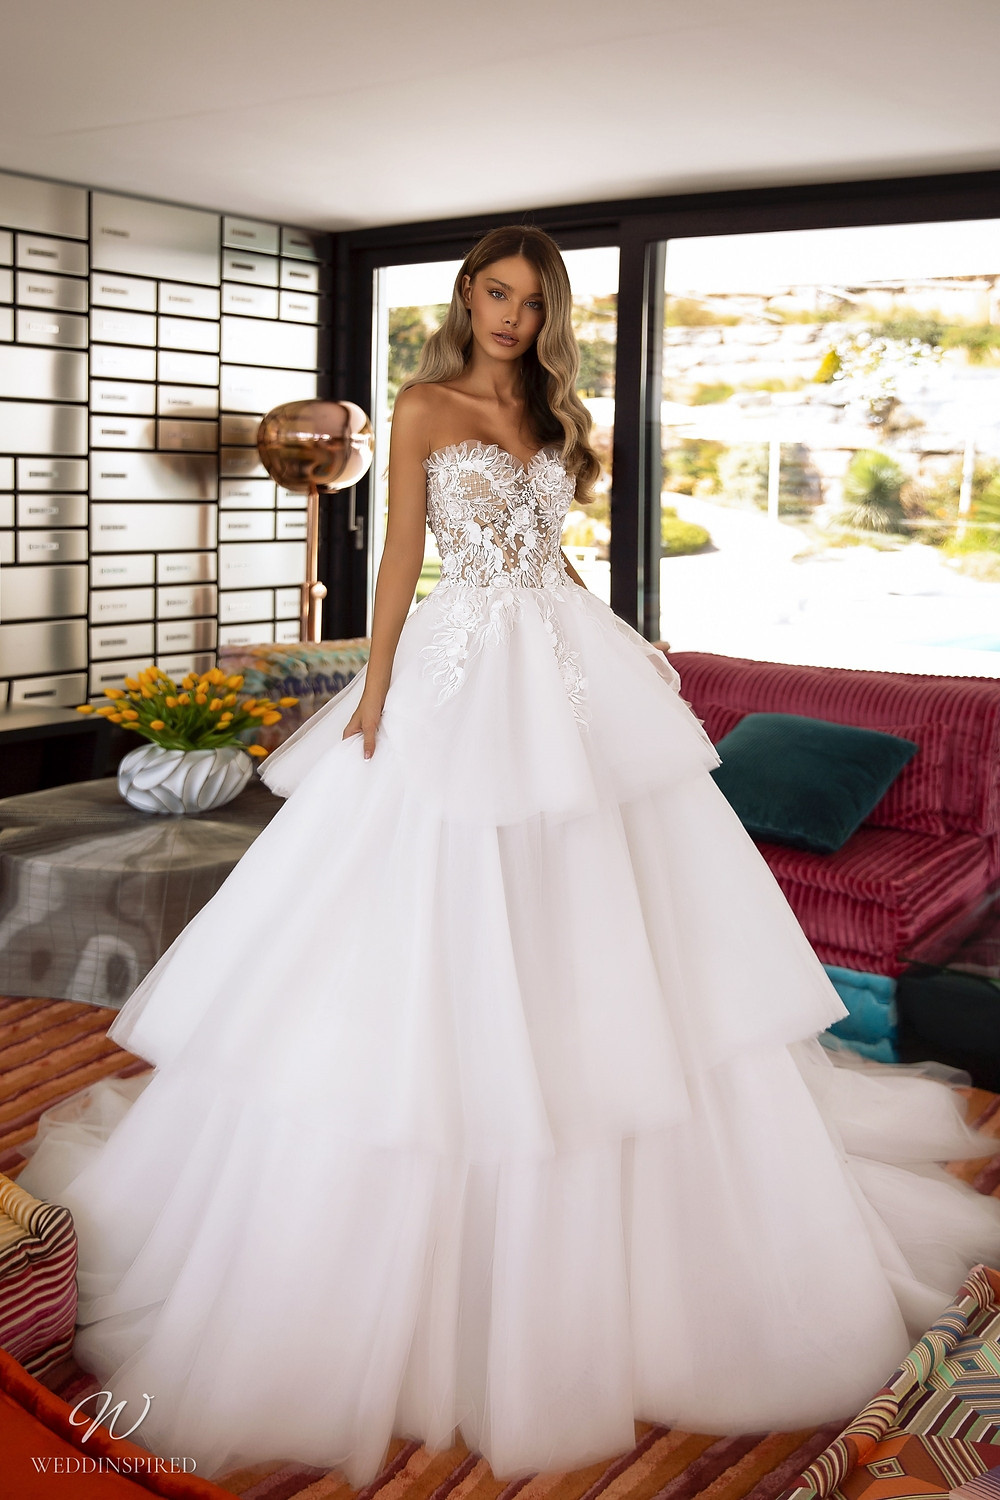 A Tina Valerdi strapless lace and tulle ball gown wedding dress with a layered ruffle skirt and a sweetheart neckline